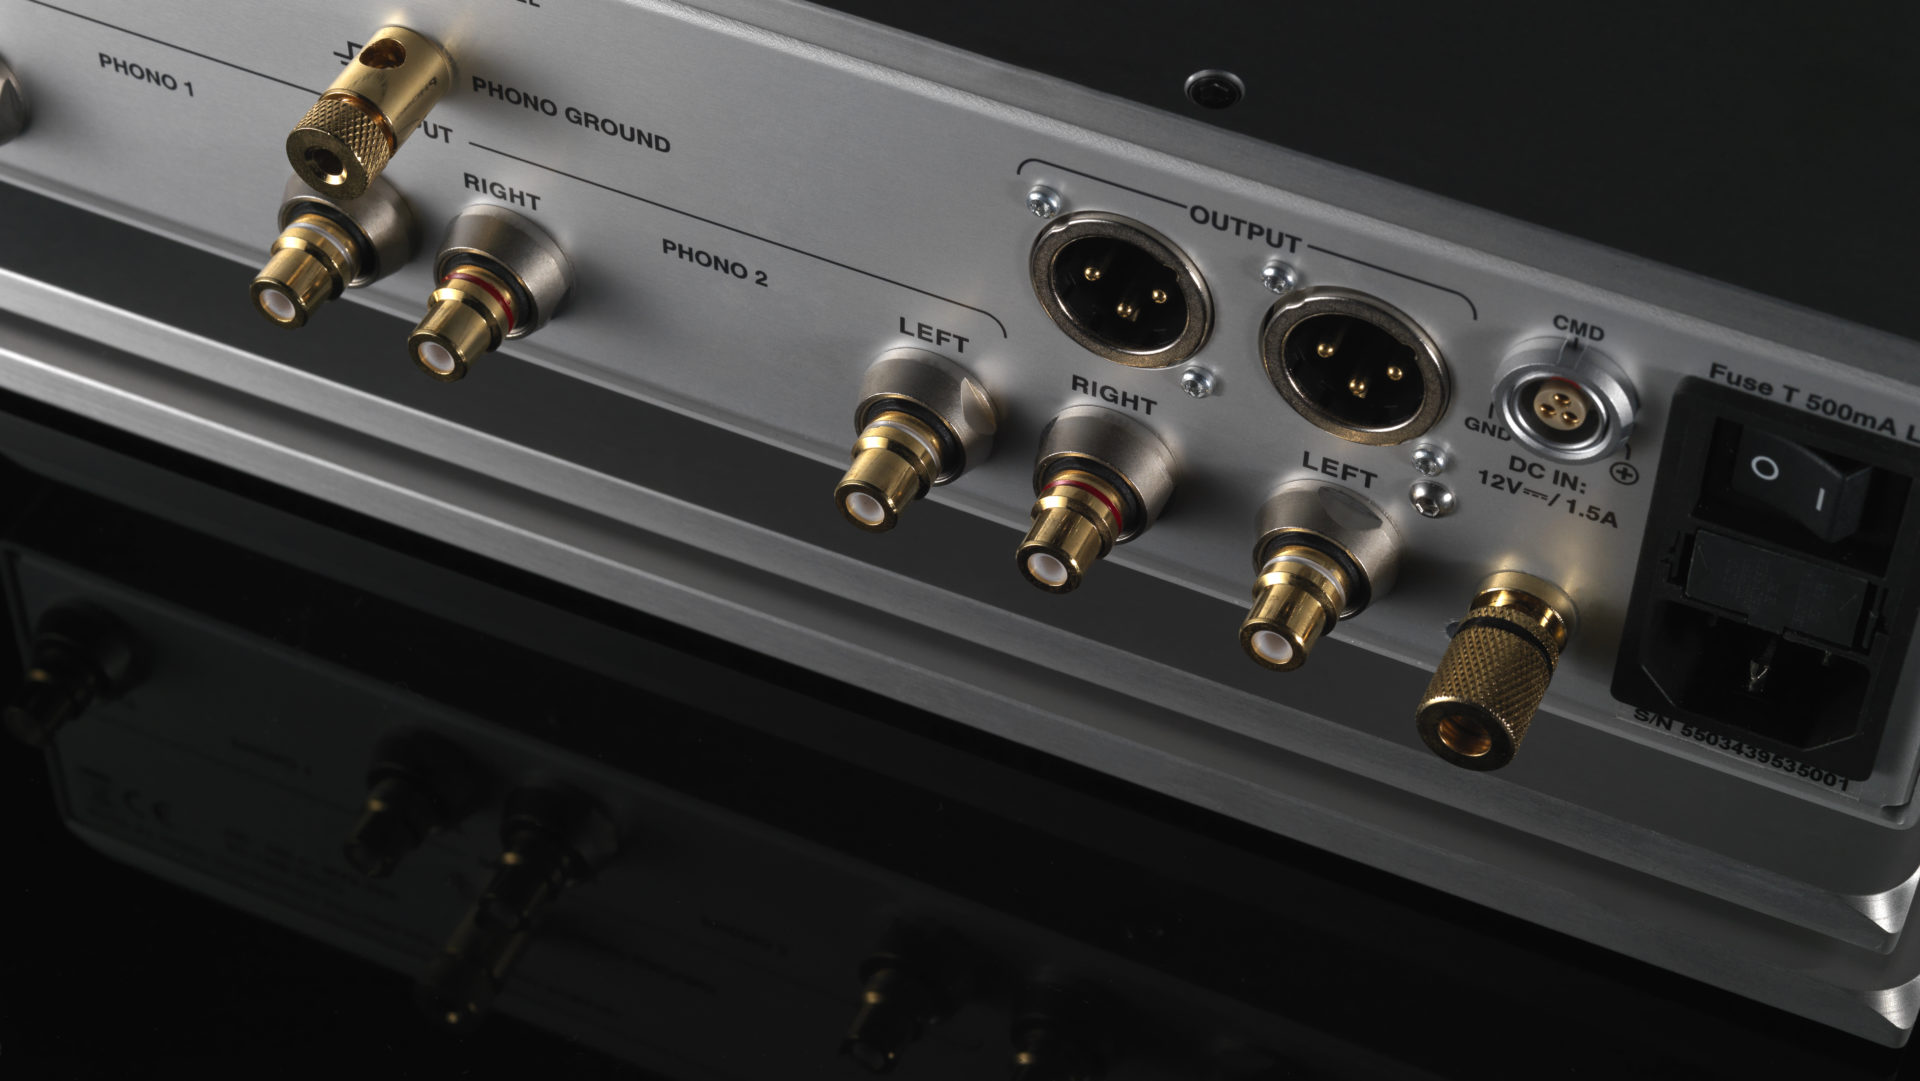 Nagra Classic Phono preamplifier tube best top back connectors rca xlr